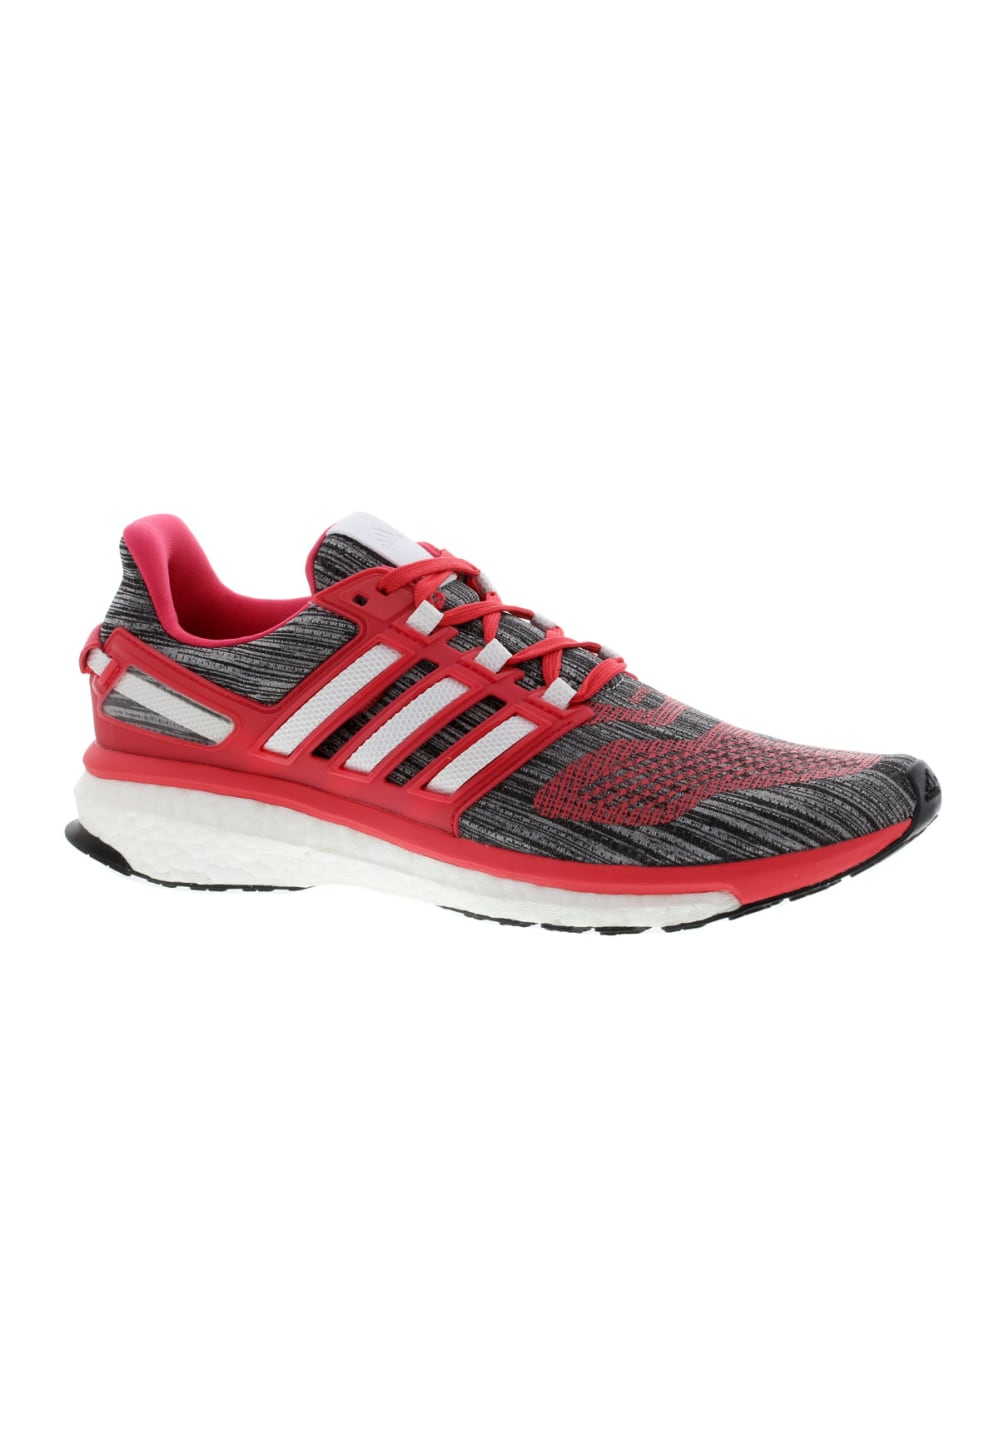 3f91b0440a819 Next. -45%. This product is currently out of stock. adidas. Energy Boost 3  - Running shoes for Women